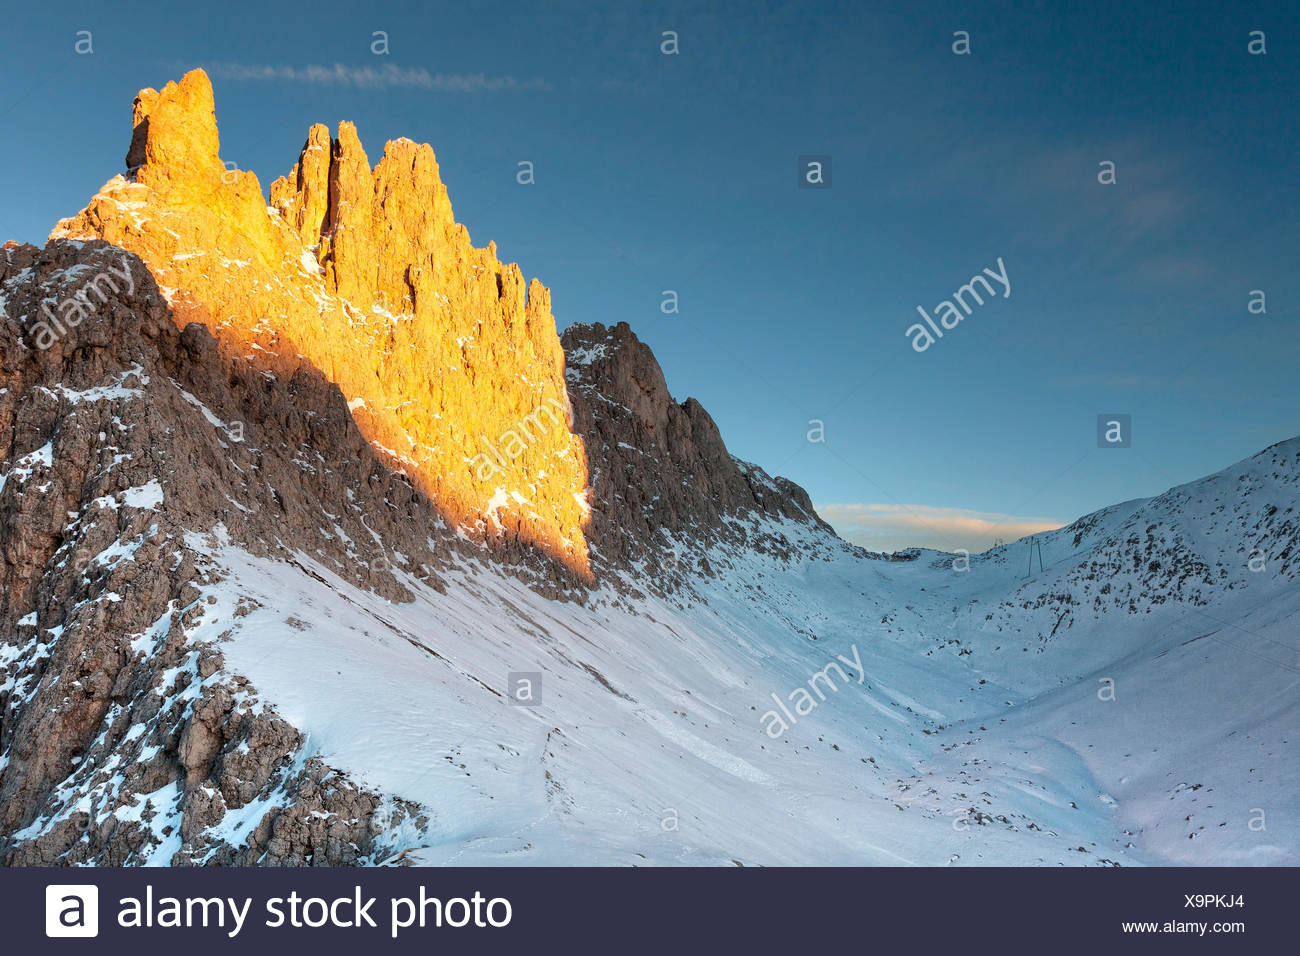 Santnerpass and Croda of King Laurin (Croda di Re Laurino) in a sunlit morning in early winter. Snow covers the entire path to the Santner pass, Rosengarten group - Catinaccio, Dolomites - Stock Image